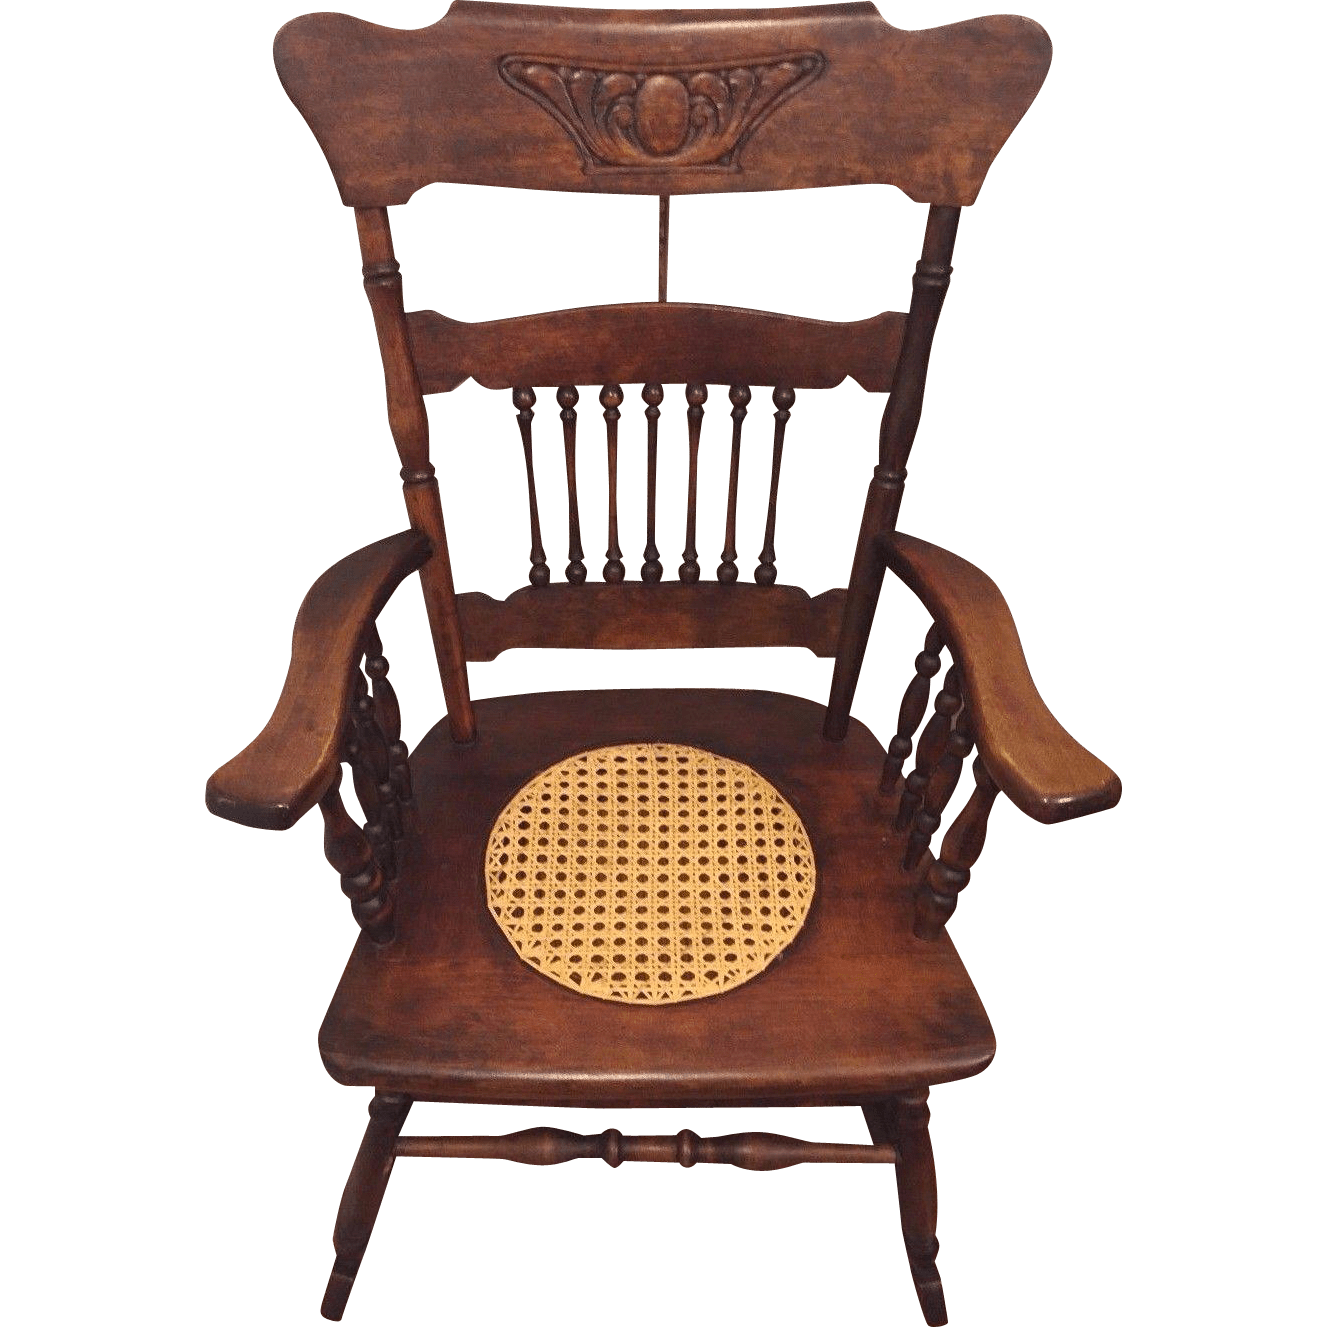 Antique Rocking Chair W Cane Seat Hartwig Kemper